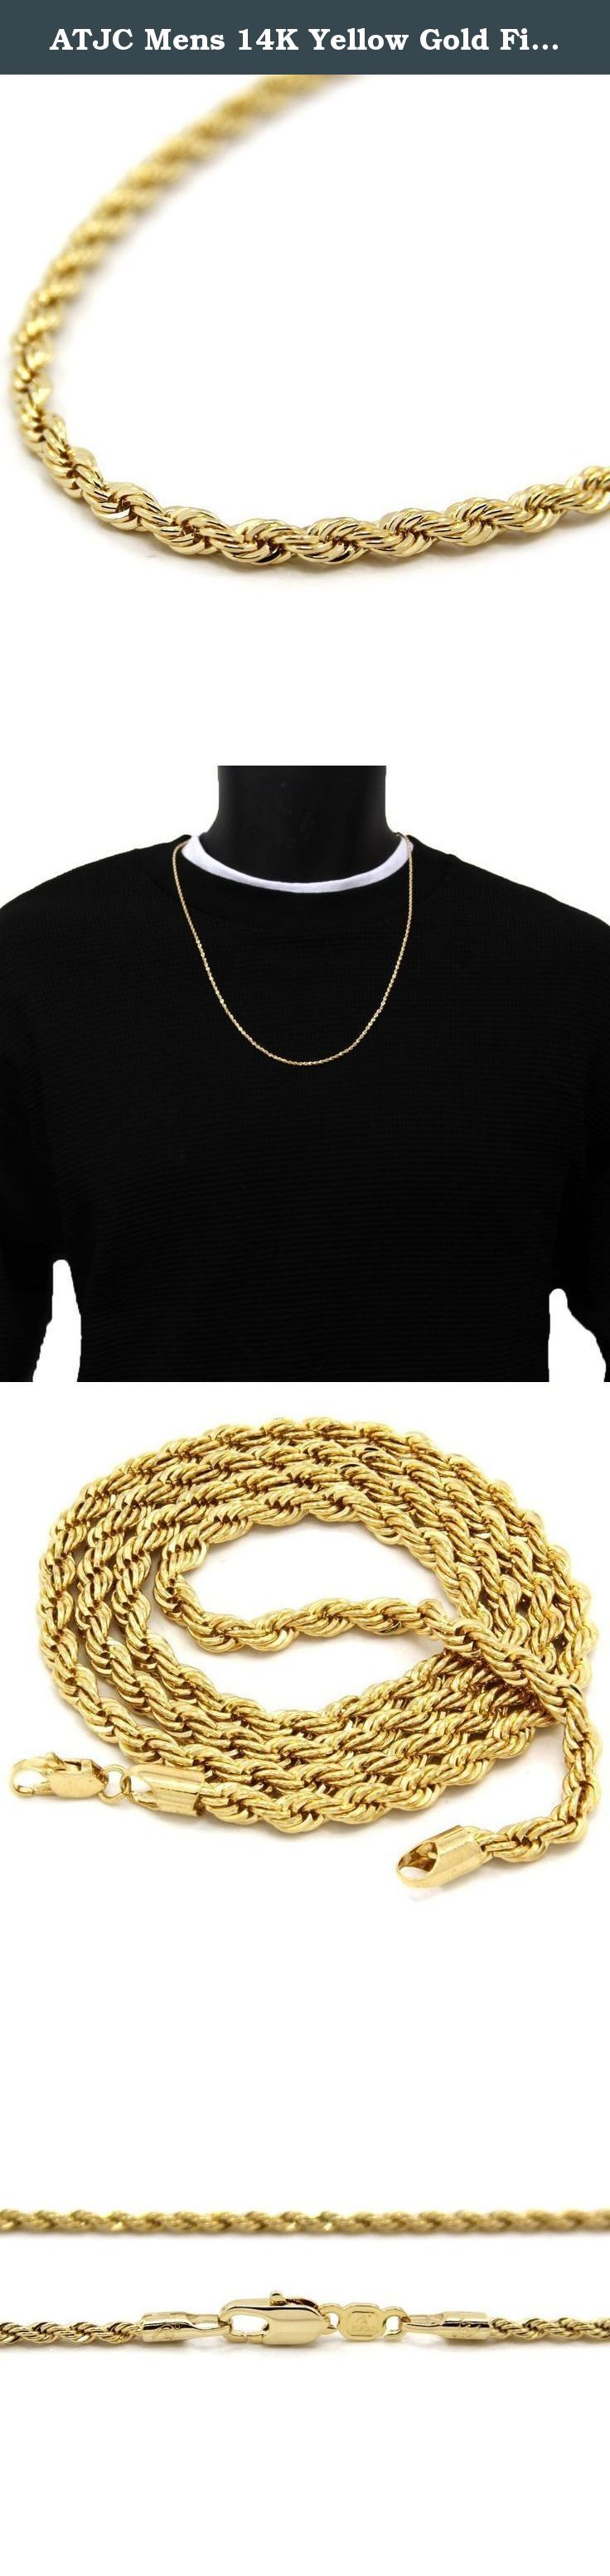 """ATJC Mens 14K Yellow Gold Filled 5mm Rope Chain Necklace 20"""" Inches. Product Features: Color: as shown in the picture, maybe the color of real goods is a little different from the pictures in different computers, please understand. Please keep in mind that this item is not real gold, but looks and shines like a real piece. All our ATJC products come with ATJC gift Card. Trendy Fashionable, it is a great gift for your boyfriend. Package Included ATJC Mens 24K Yellow Gold Filled Rope Chain..."""